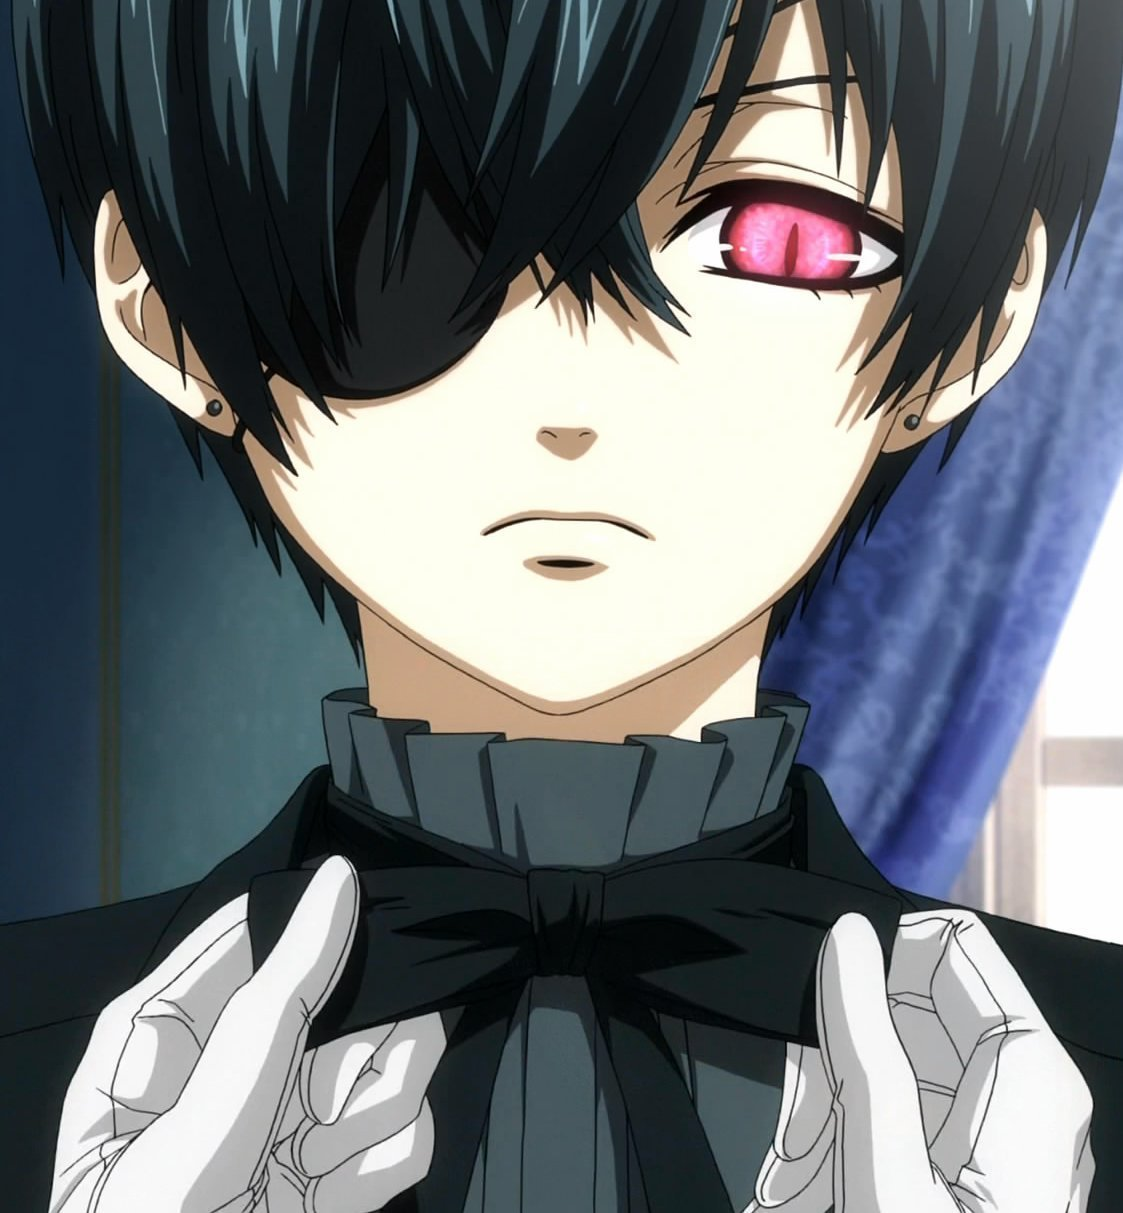 ciel phantomhive eye - photo #19